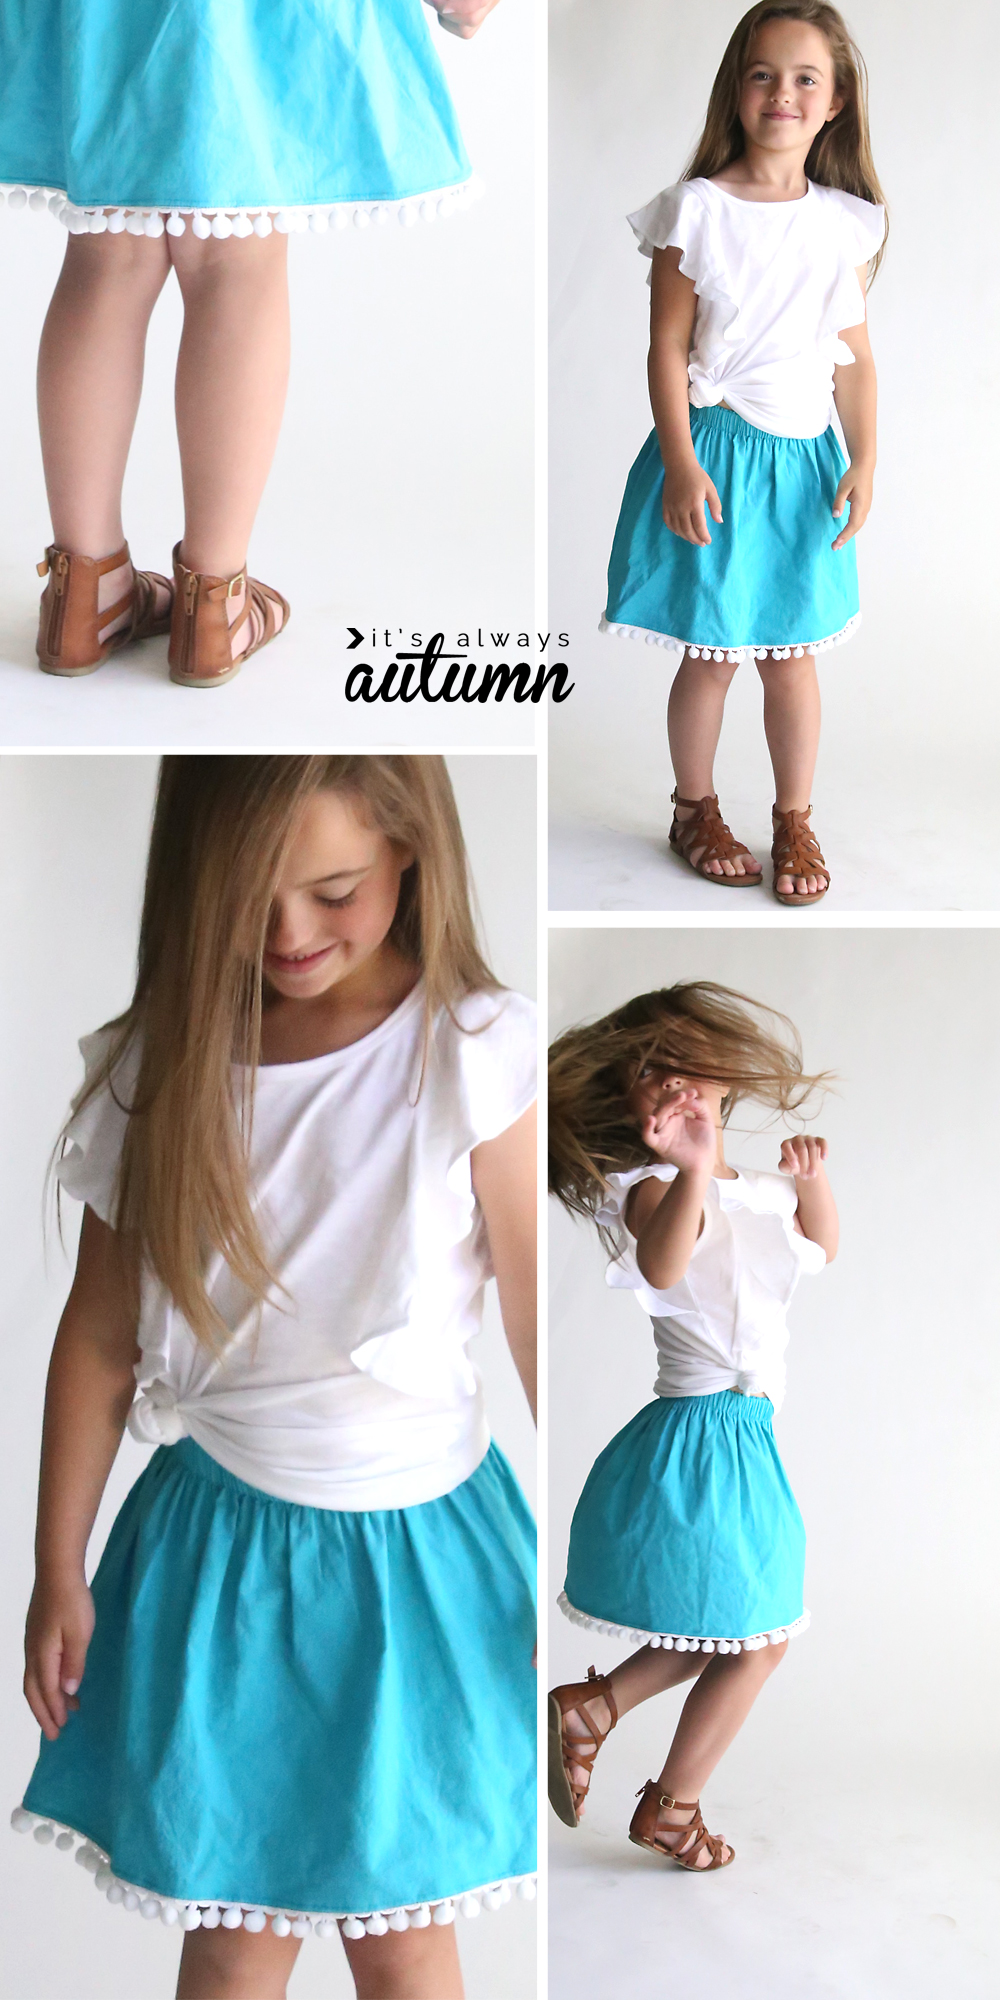 Girl wearing a cute reversible skirt with pom pom trim